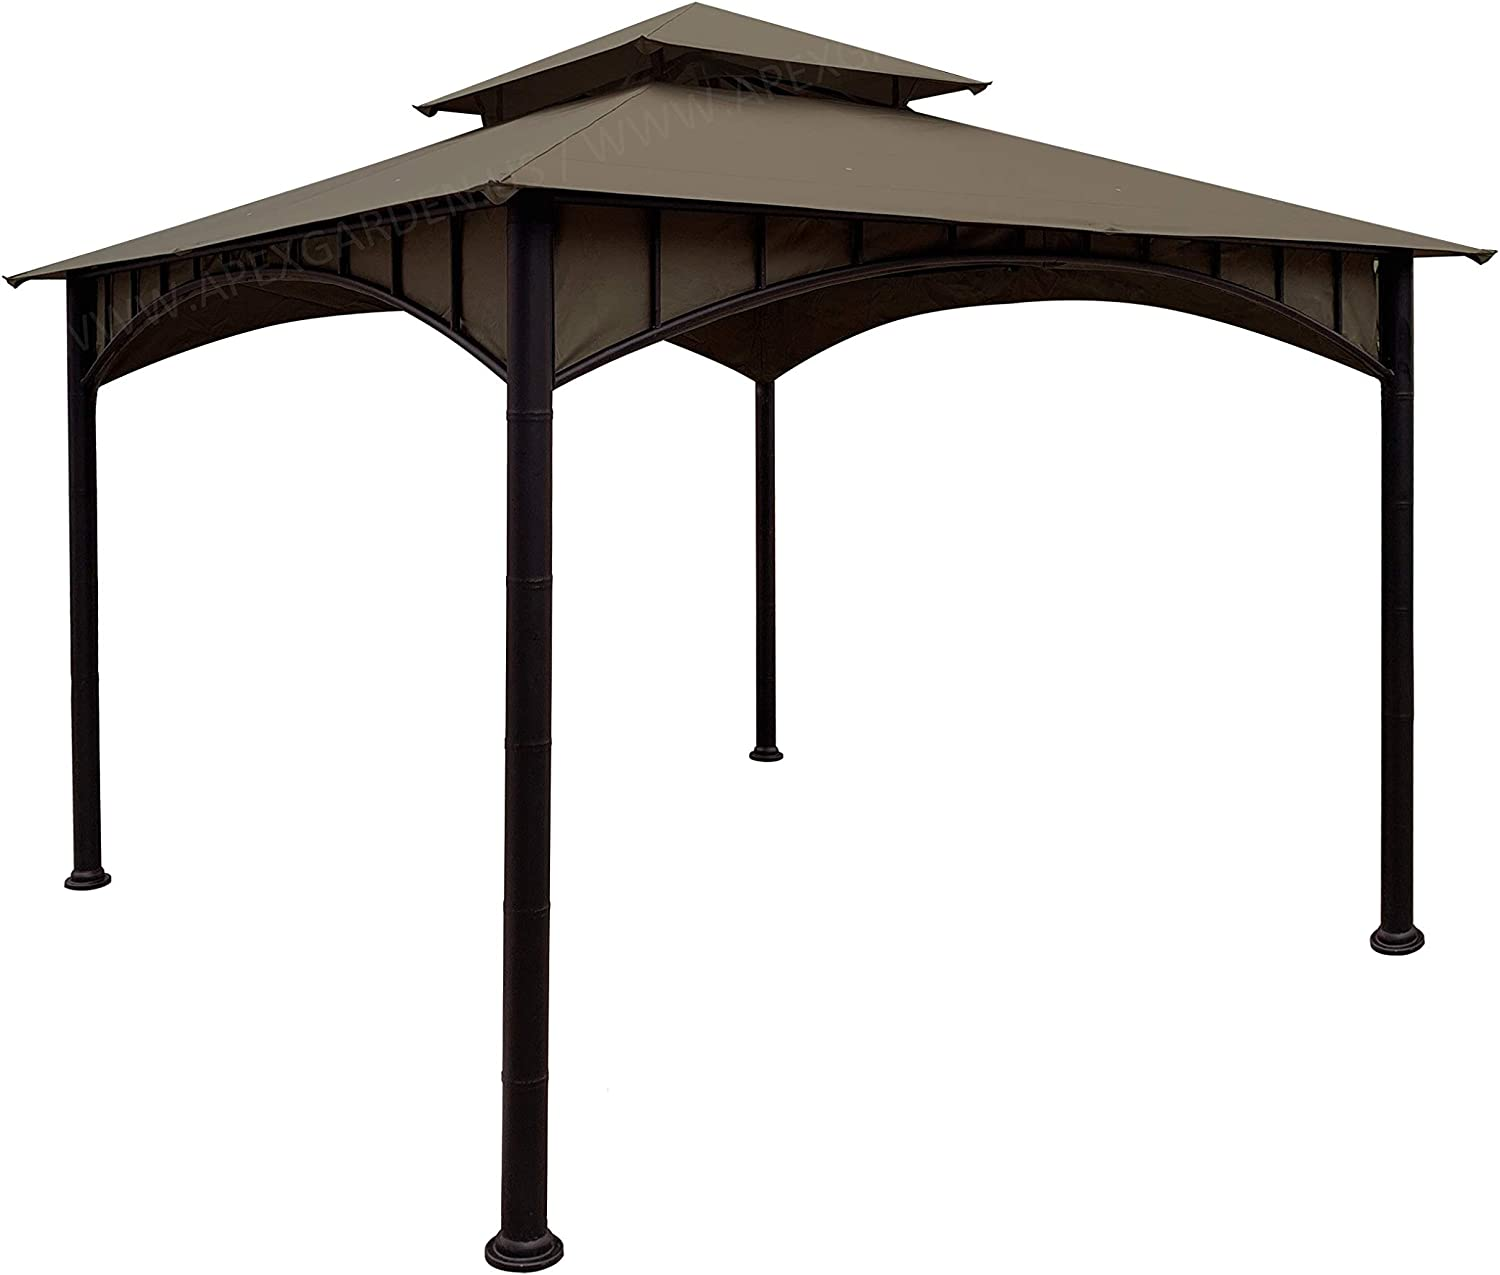 APEX GARDEN Replacement Canopy Top CAN ONLY FIT for Model #D-GZ136PST-N Summer Breeze Soft Top Gazebo (Canopy Top Only) (Tan)